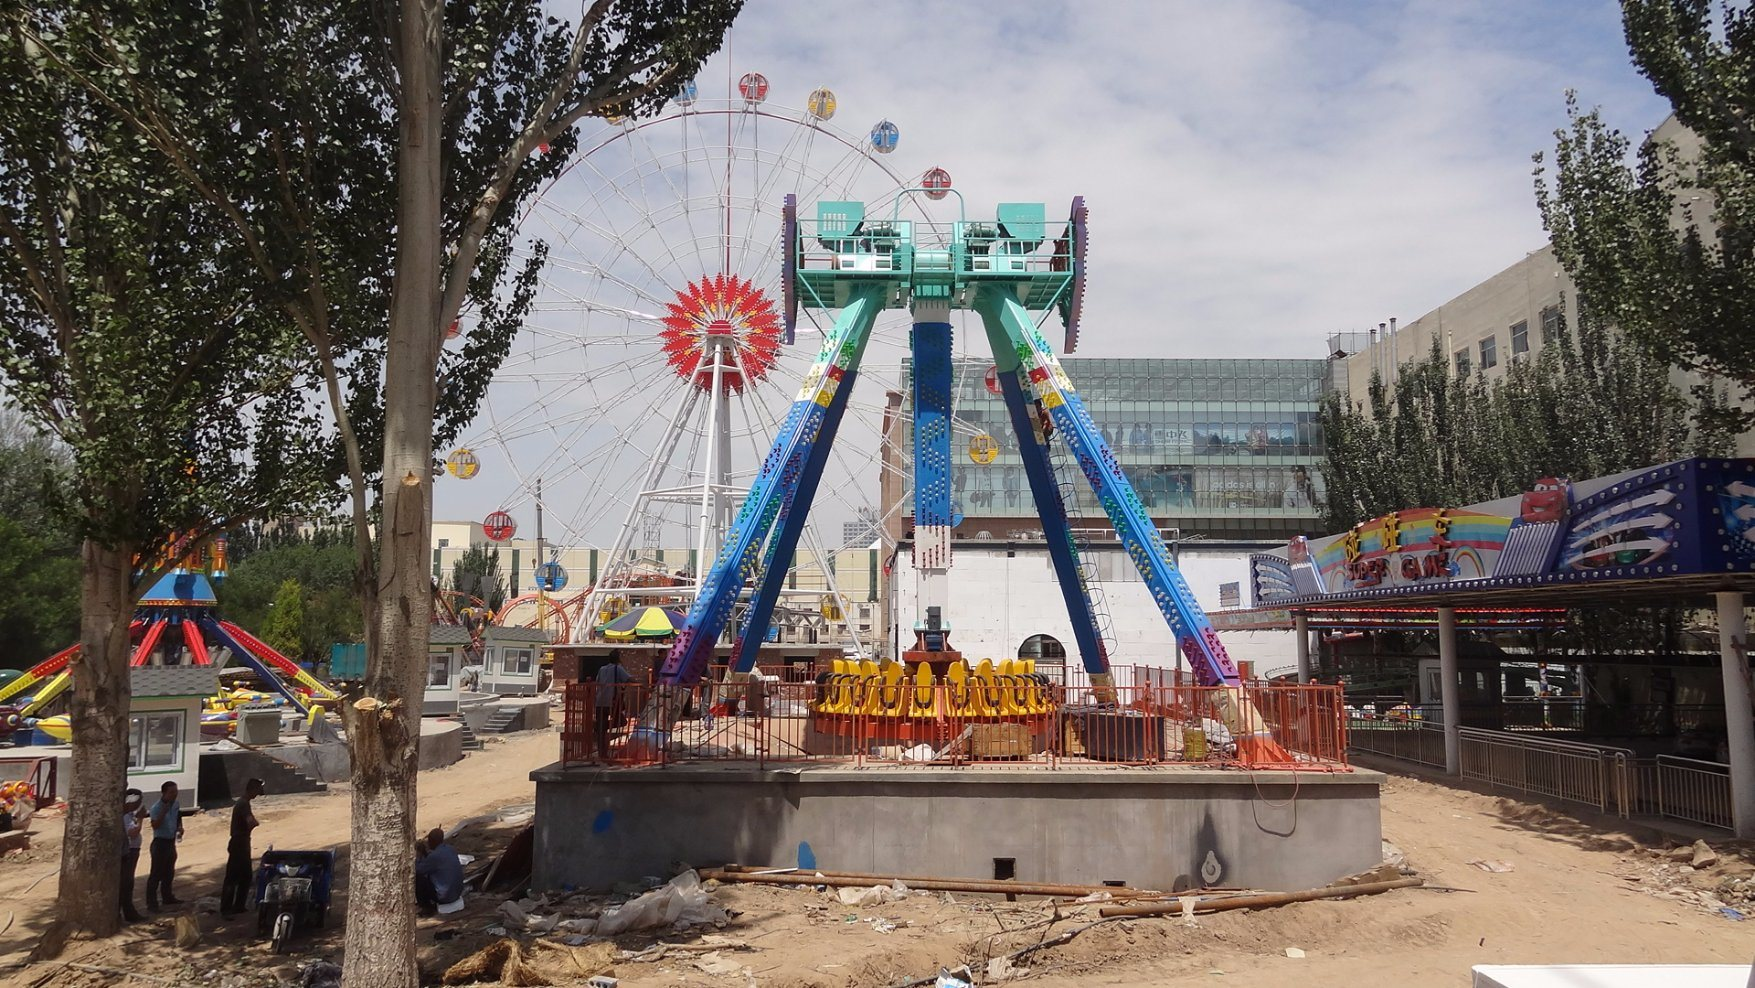 Amusement Track Crazy Big Pendulum Rides! Outdoor Playground Big Pendulum